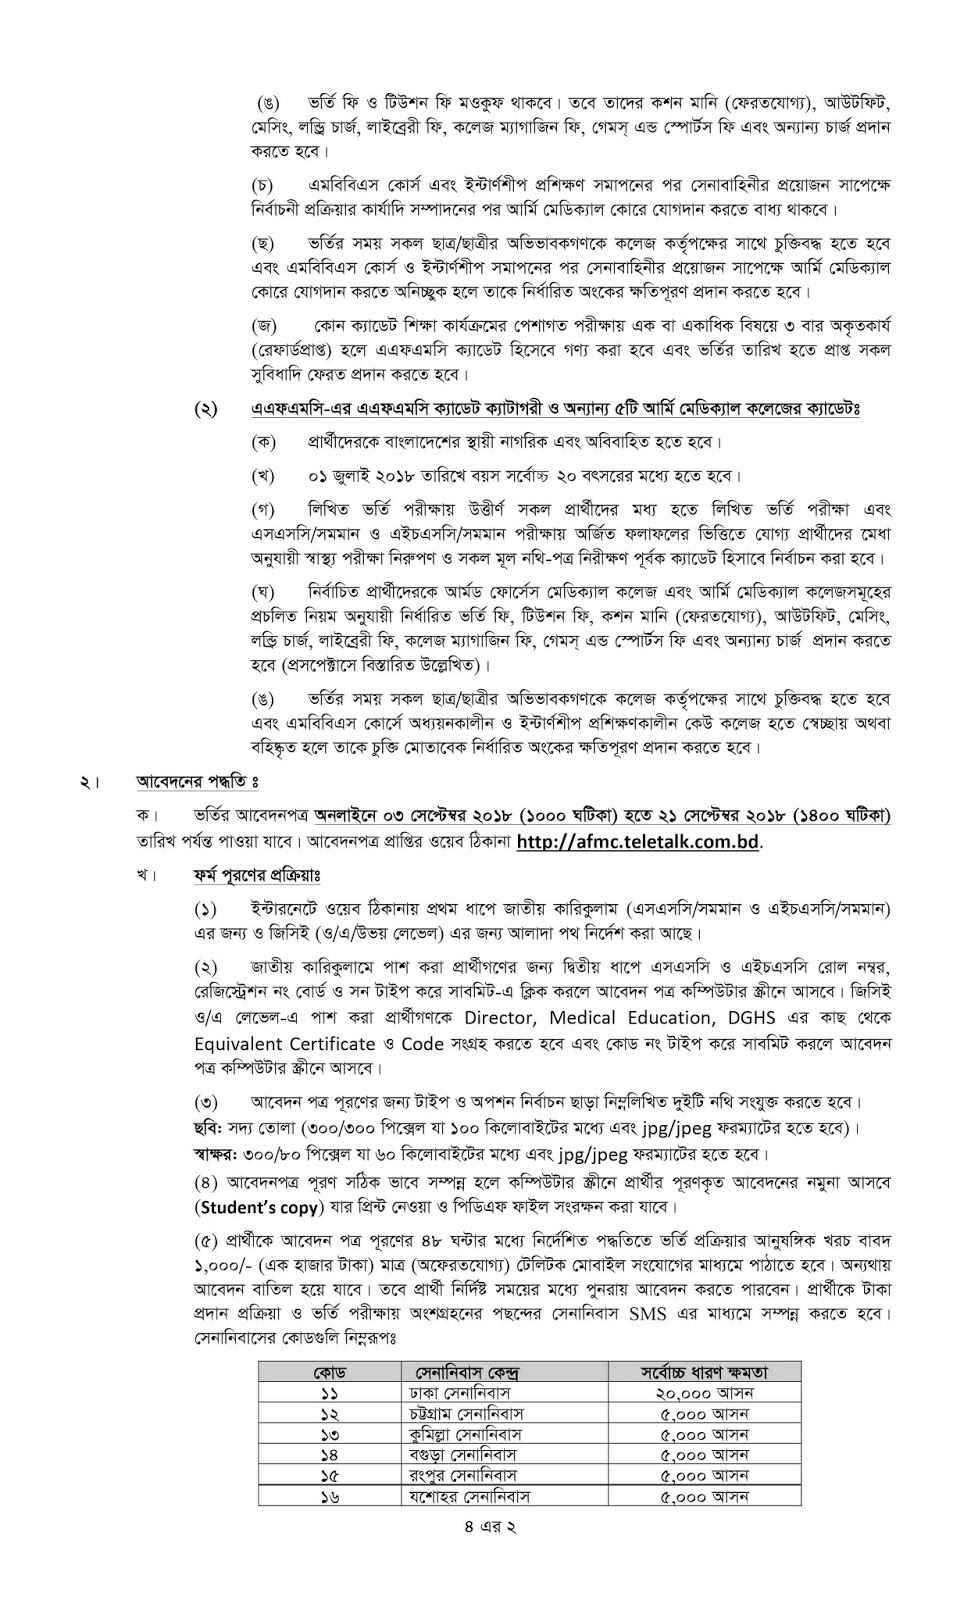 Bangladesh Armed Forces Medical College (AFMC) Admission Circular 2018-2019